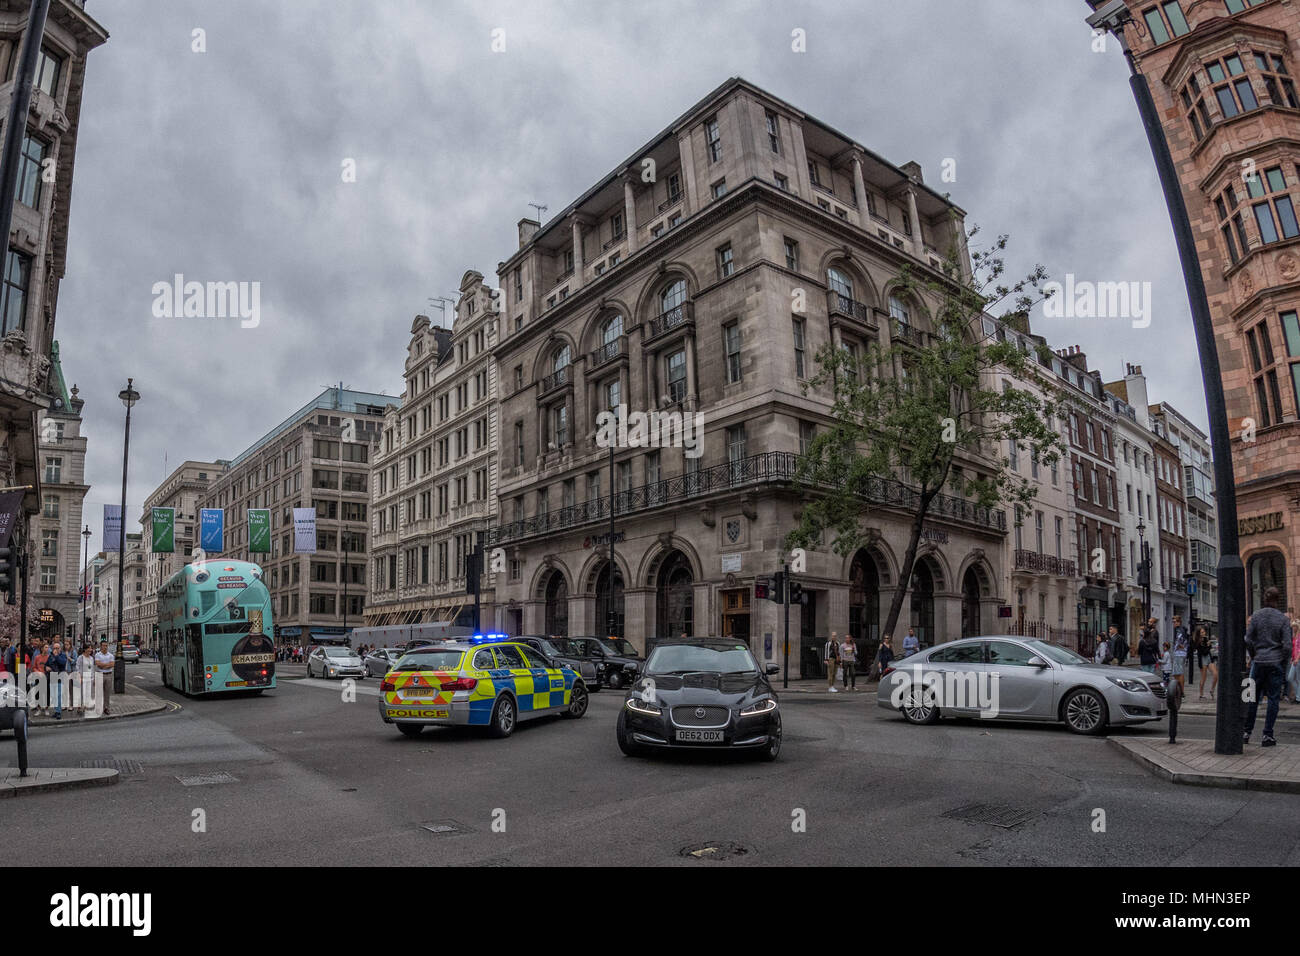 LONDON, ENGLAND - JULY 16 2017 - Tourists and locals in Piccadilly Circus congested town traffic of UK Capital - Stock Image